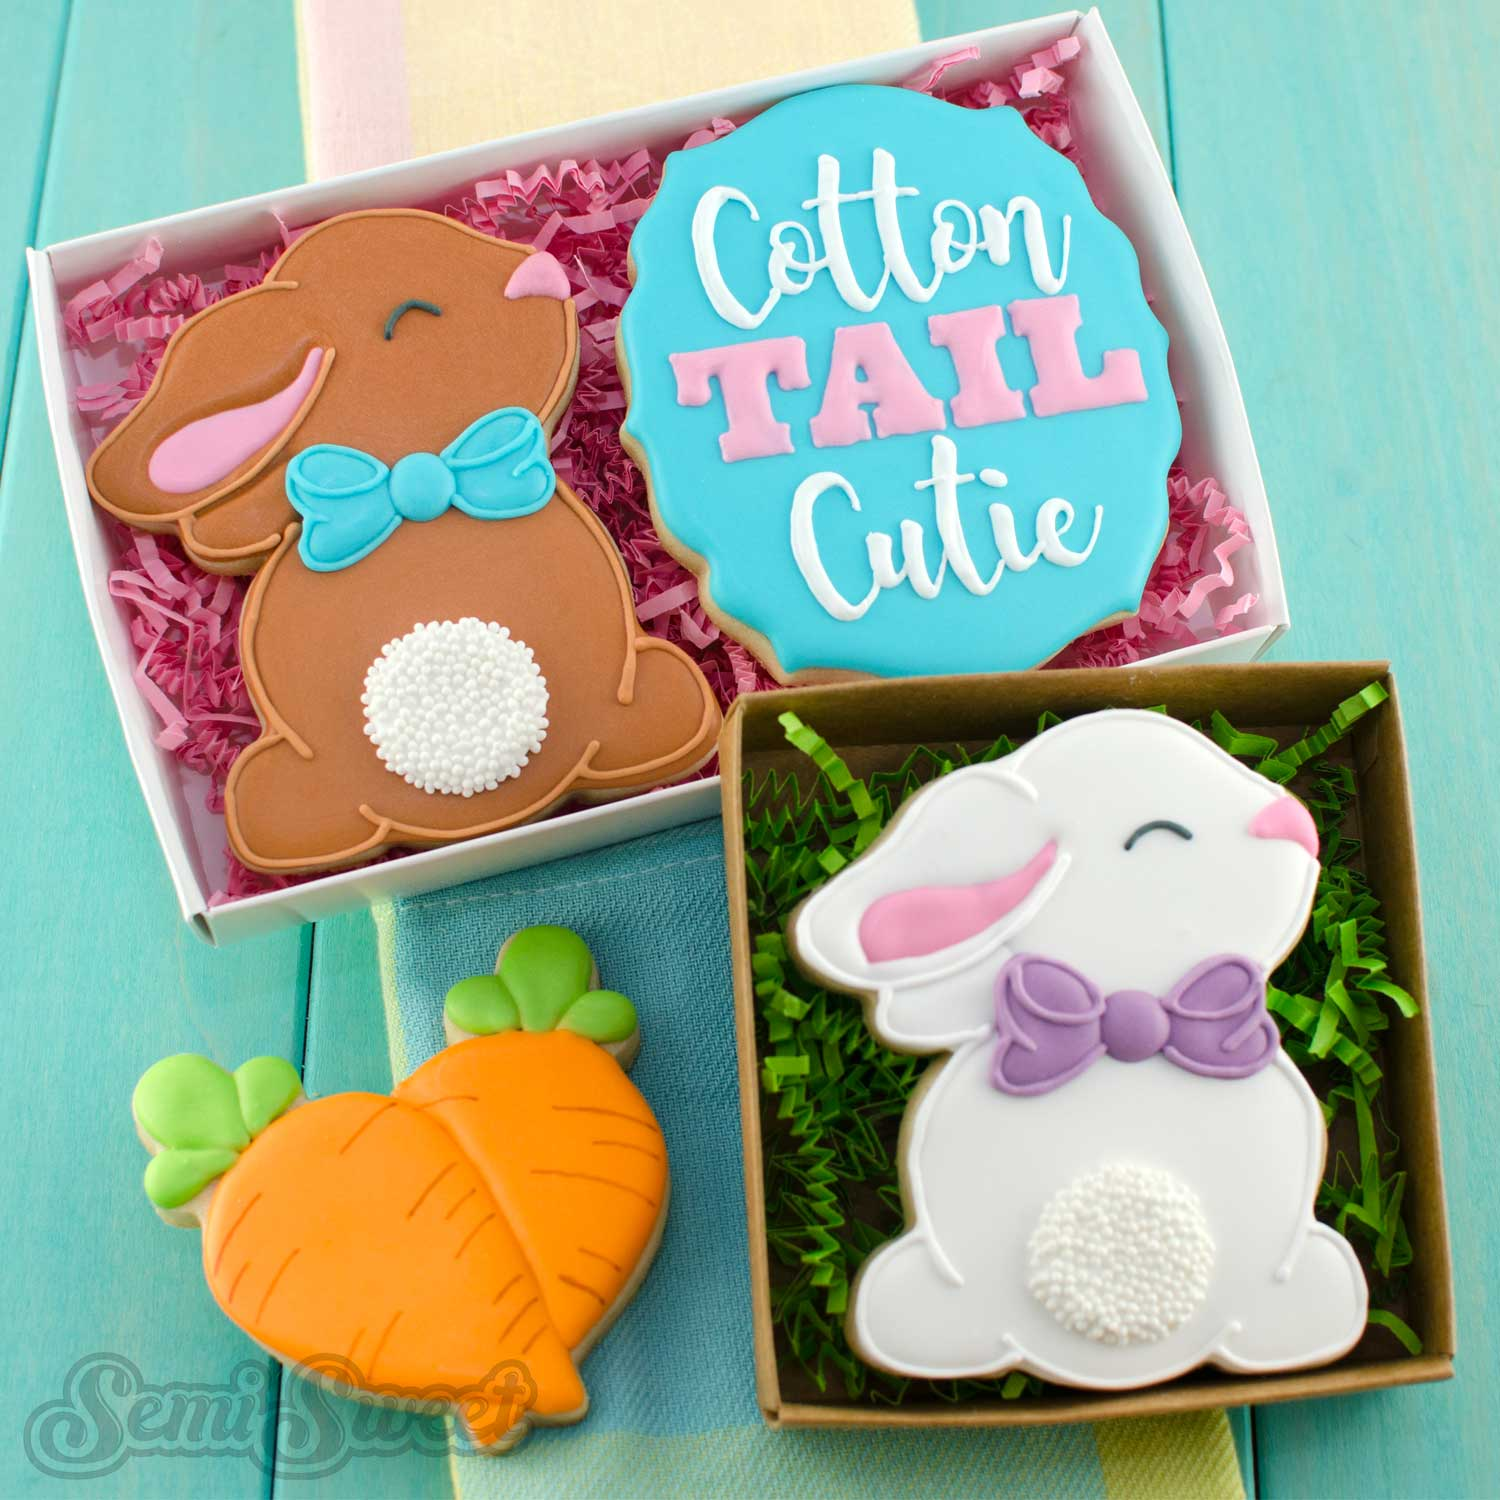 cottontail bunny cookies by SemiSweetDesigns.com